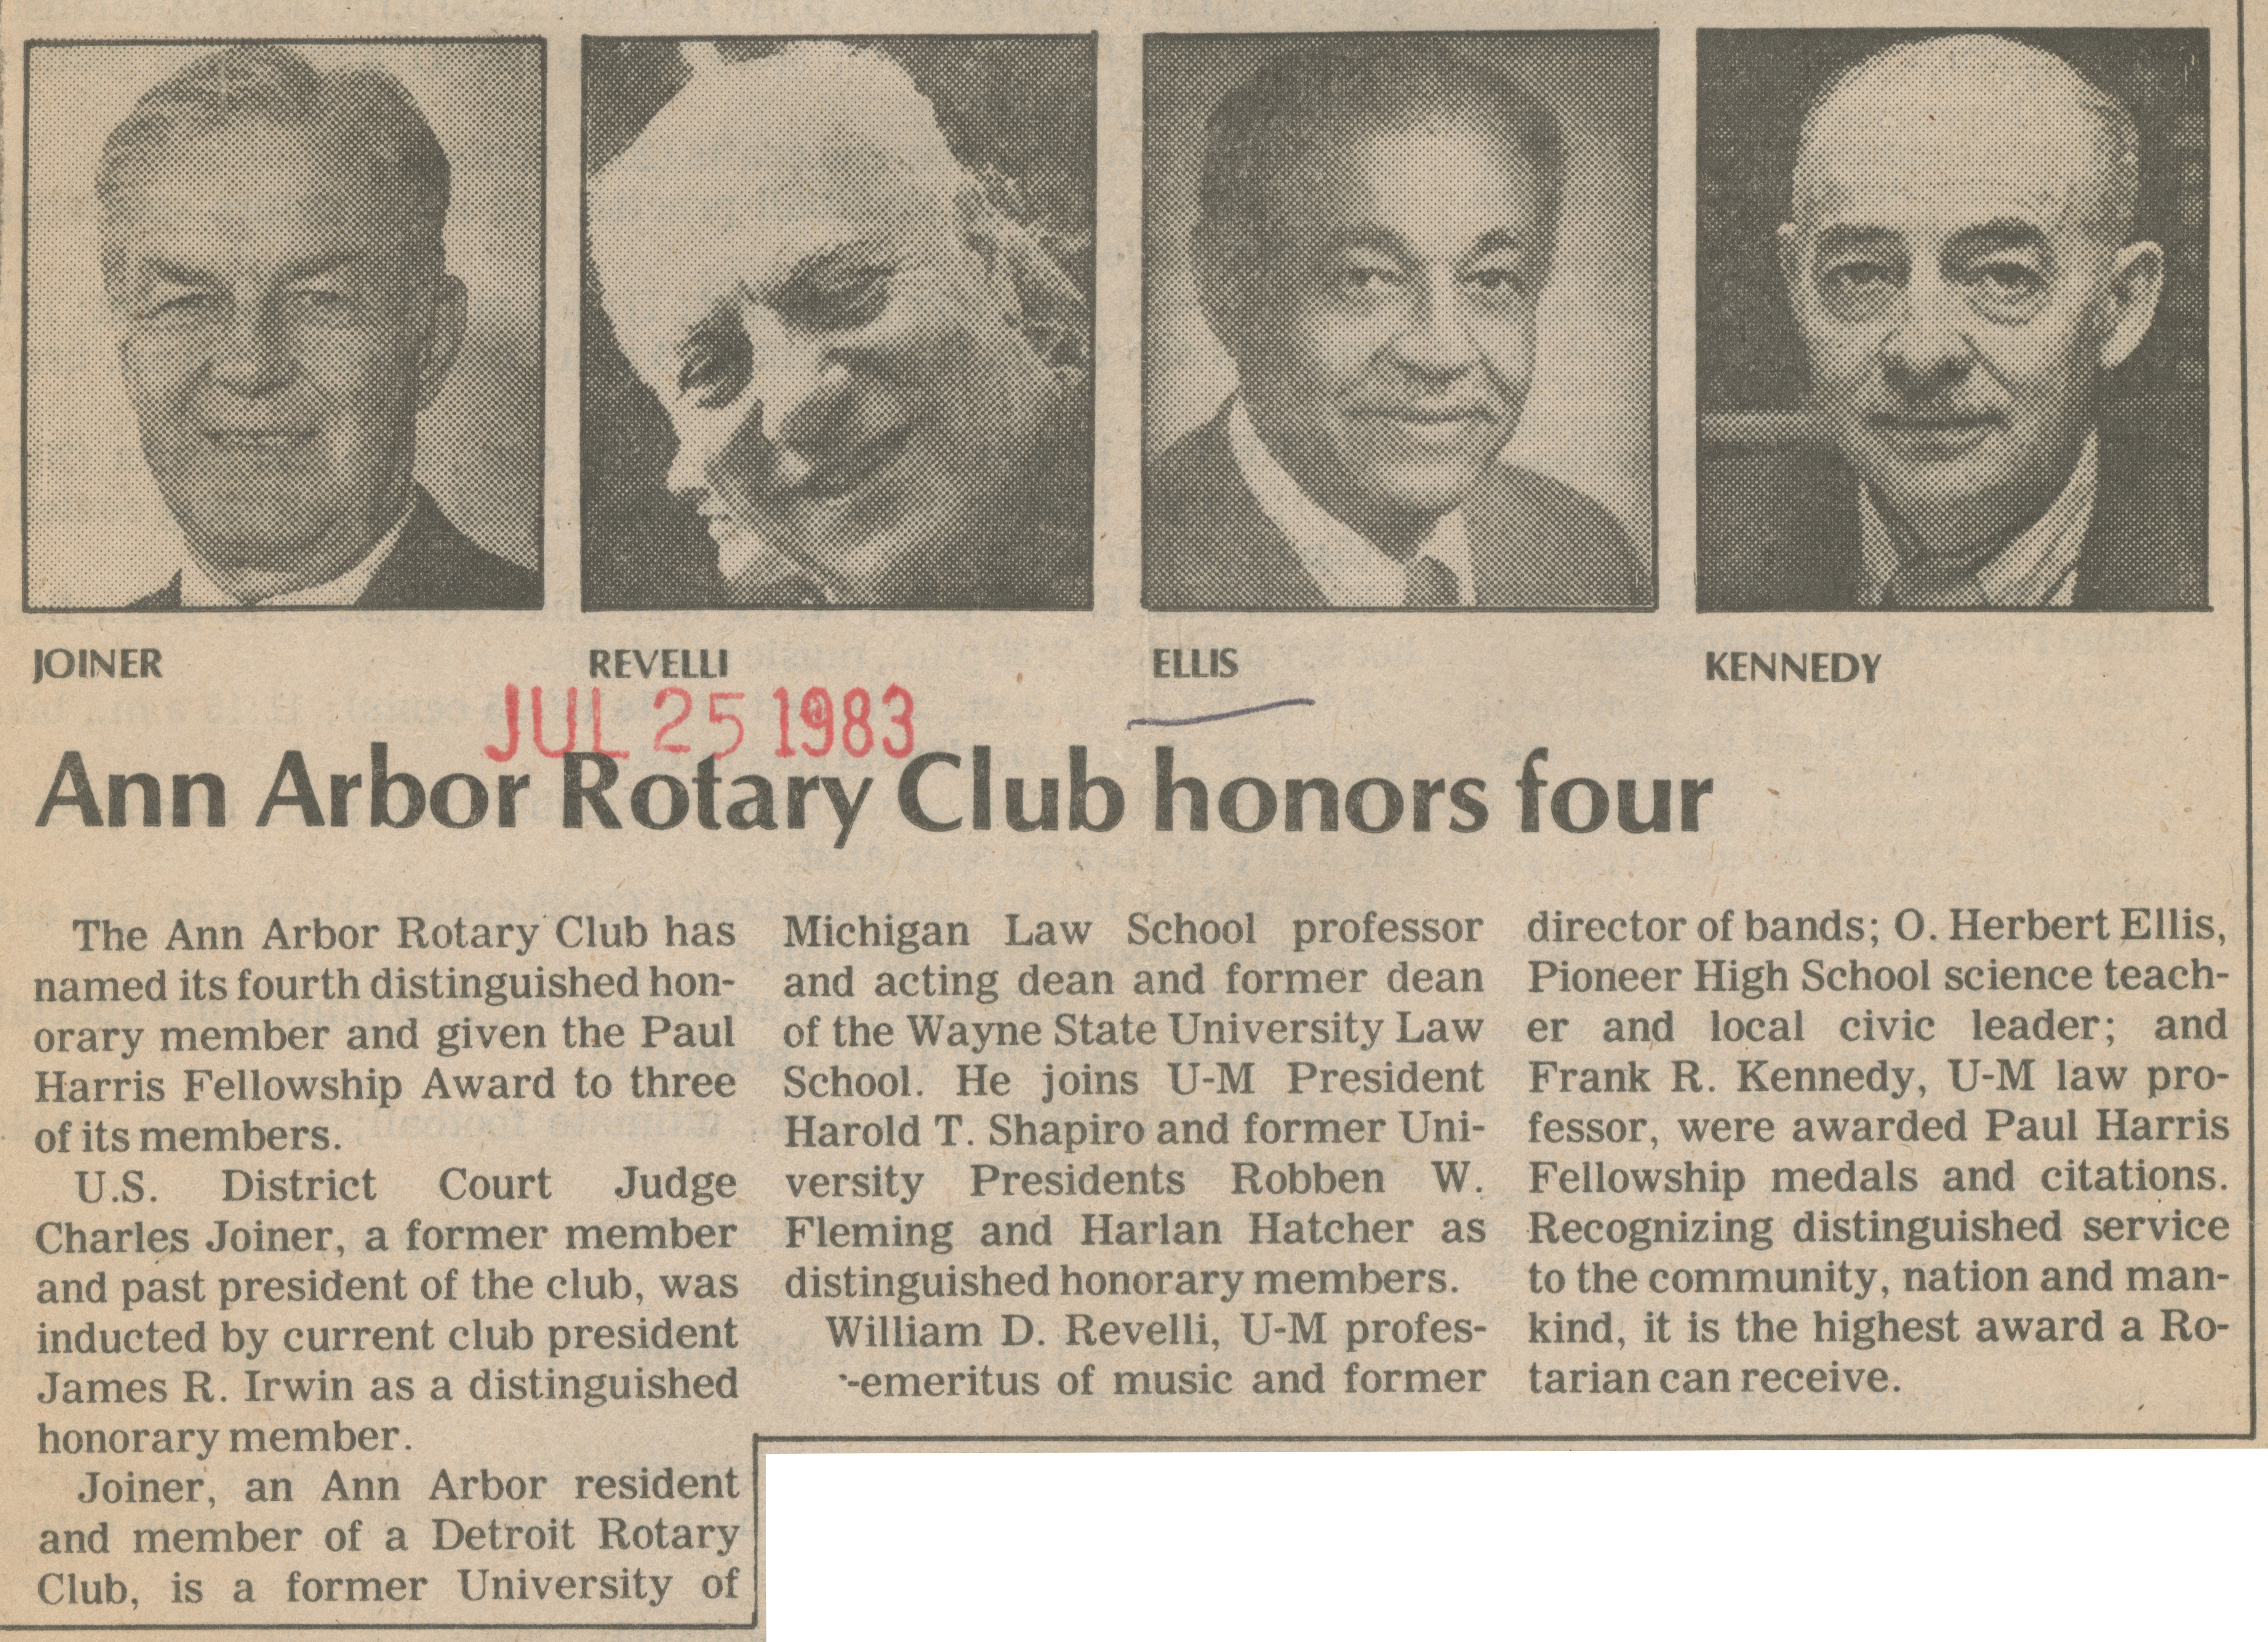 Ann Arbor Rotary Club honors four image